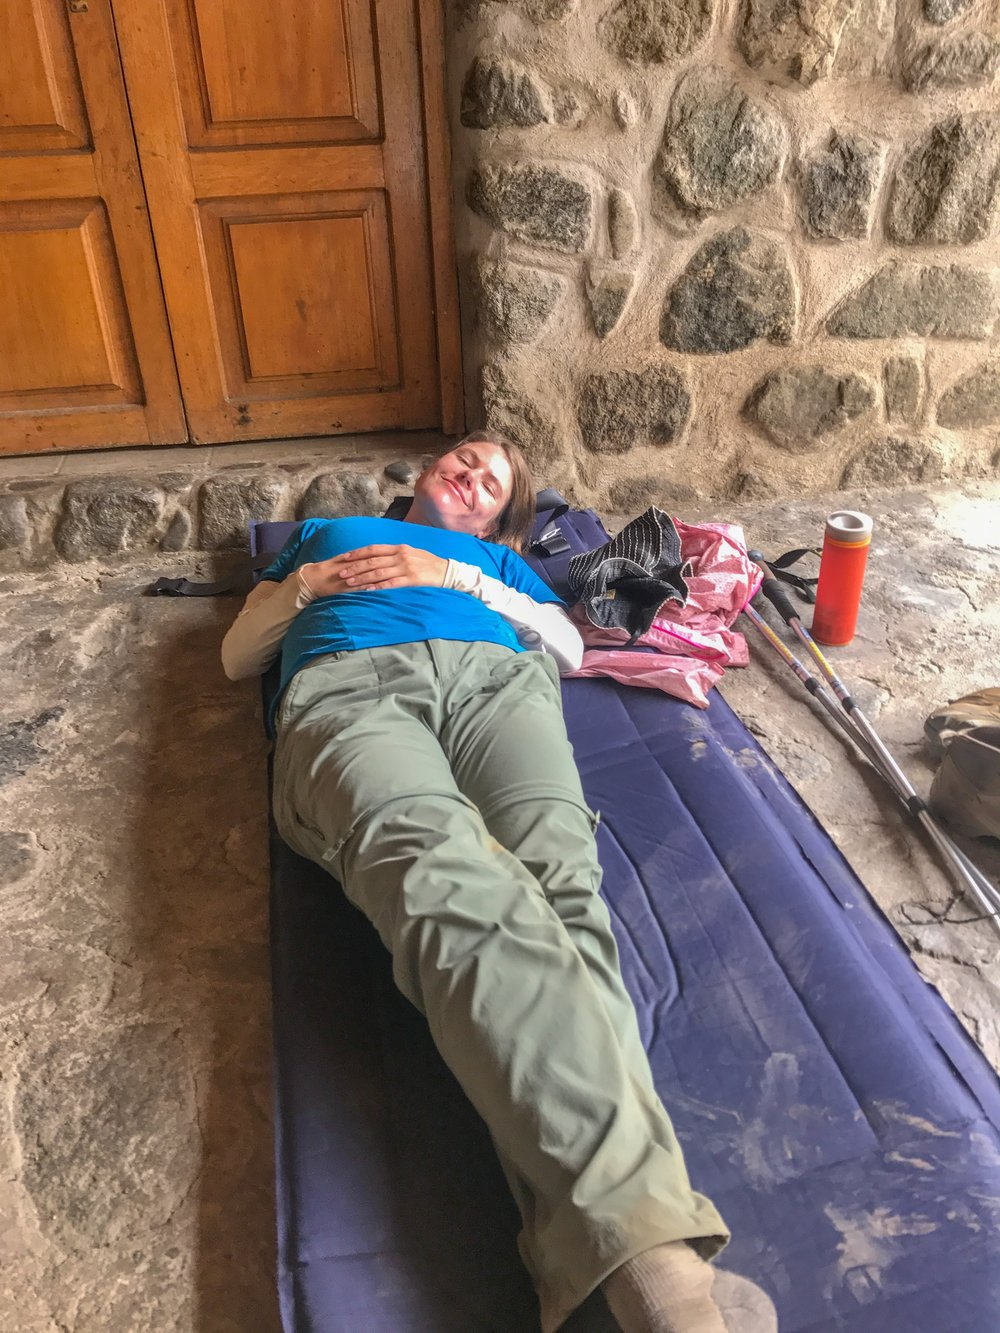 A checkpoint officer took pity on my cold and lent me his sleeping mat to take a nap